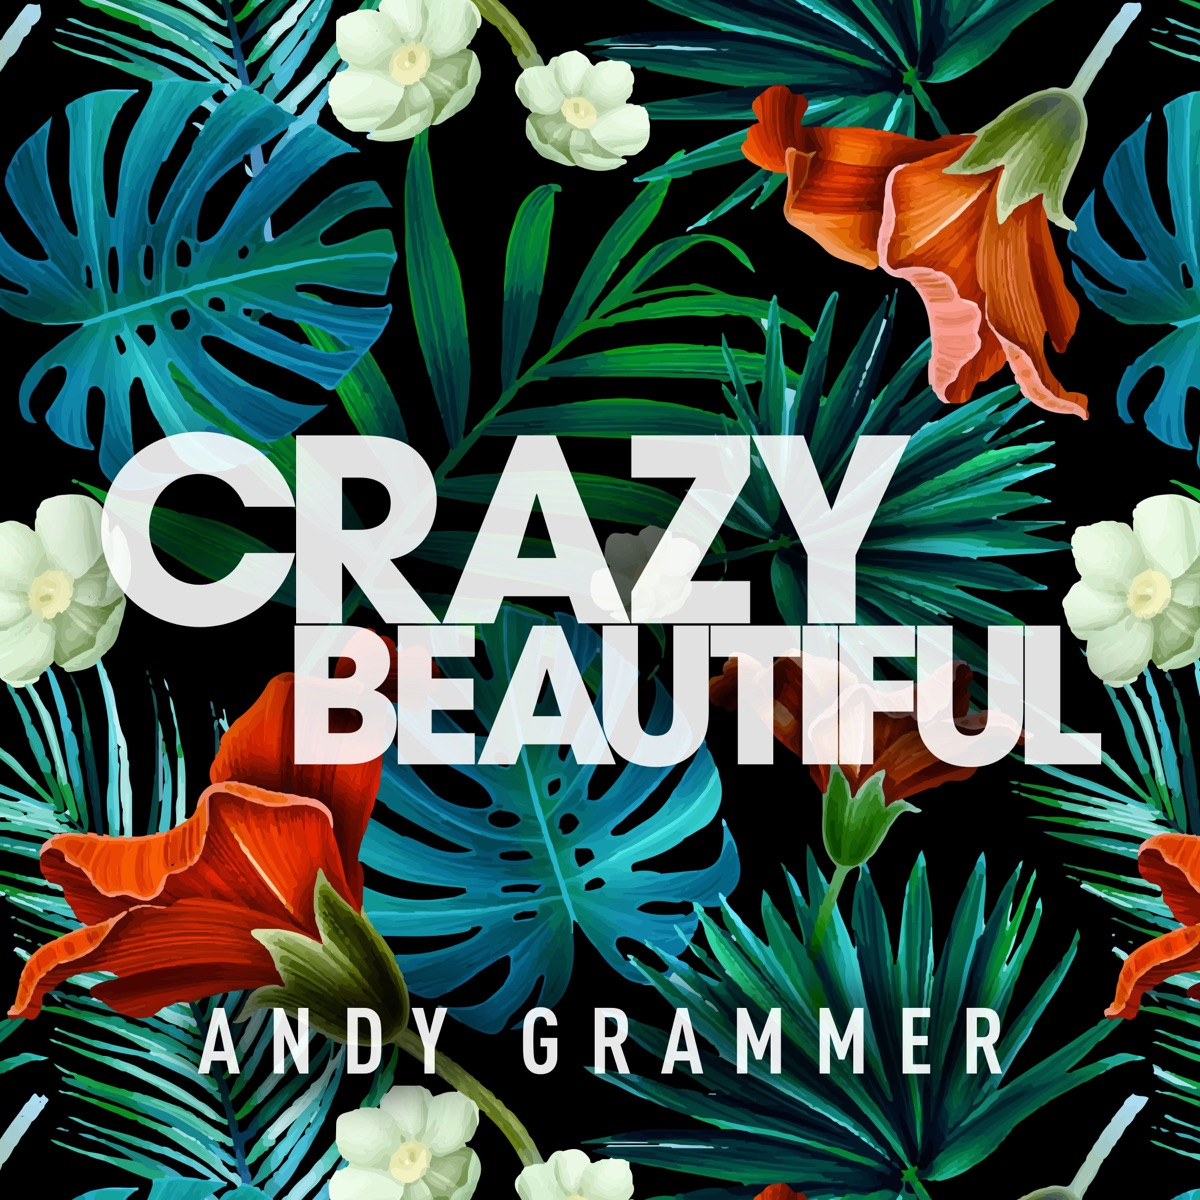 Crazy Beautiful - Single Album Cover by Andy Grammer